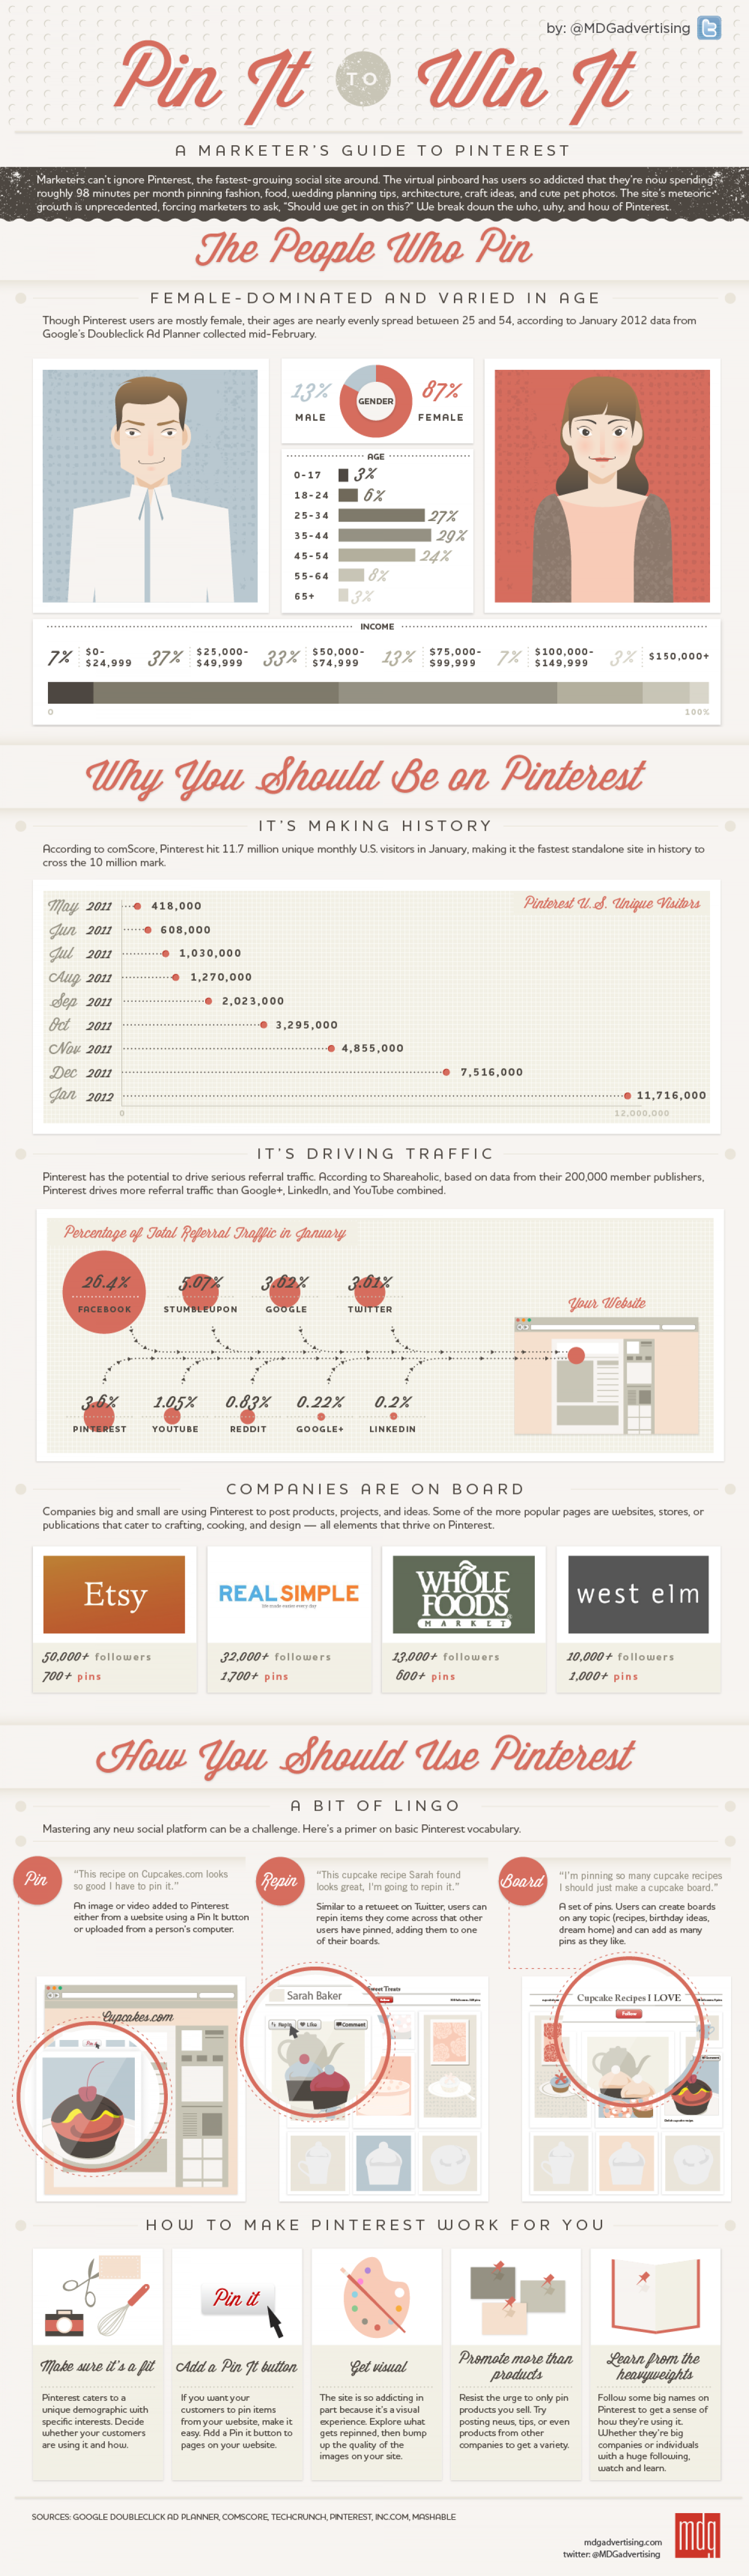 A Marketer's Guide To Pinterest: Pin It To Win It Infographic